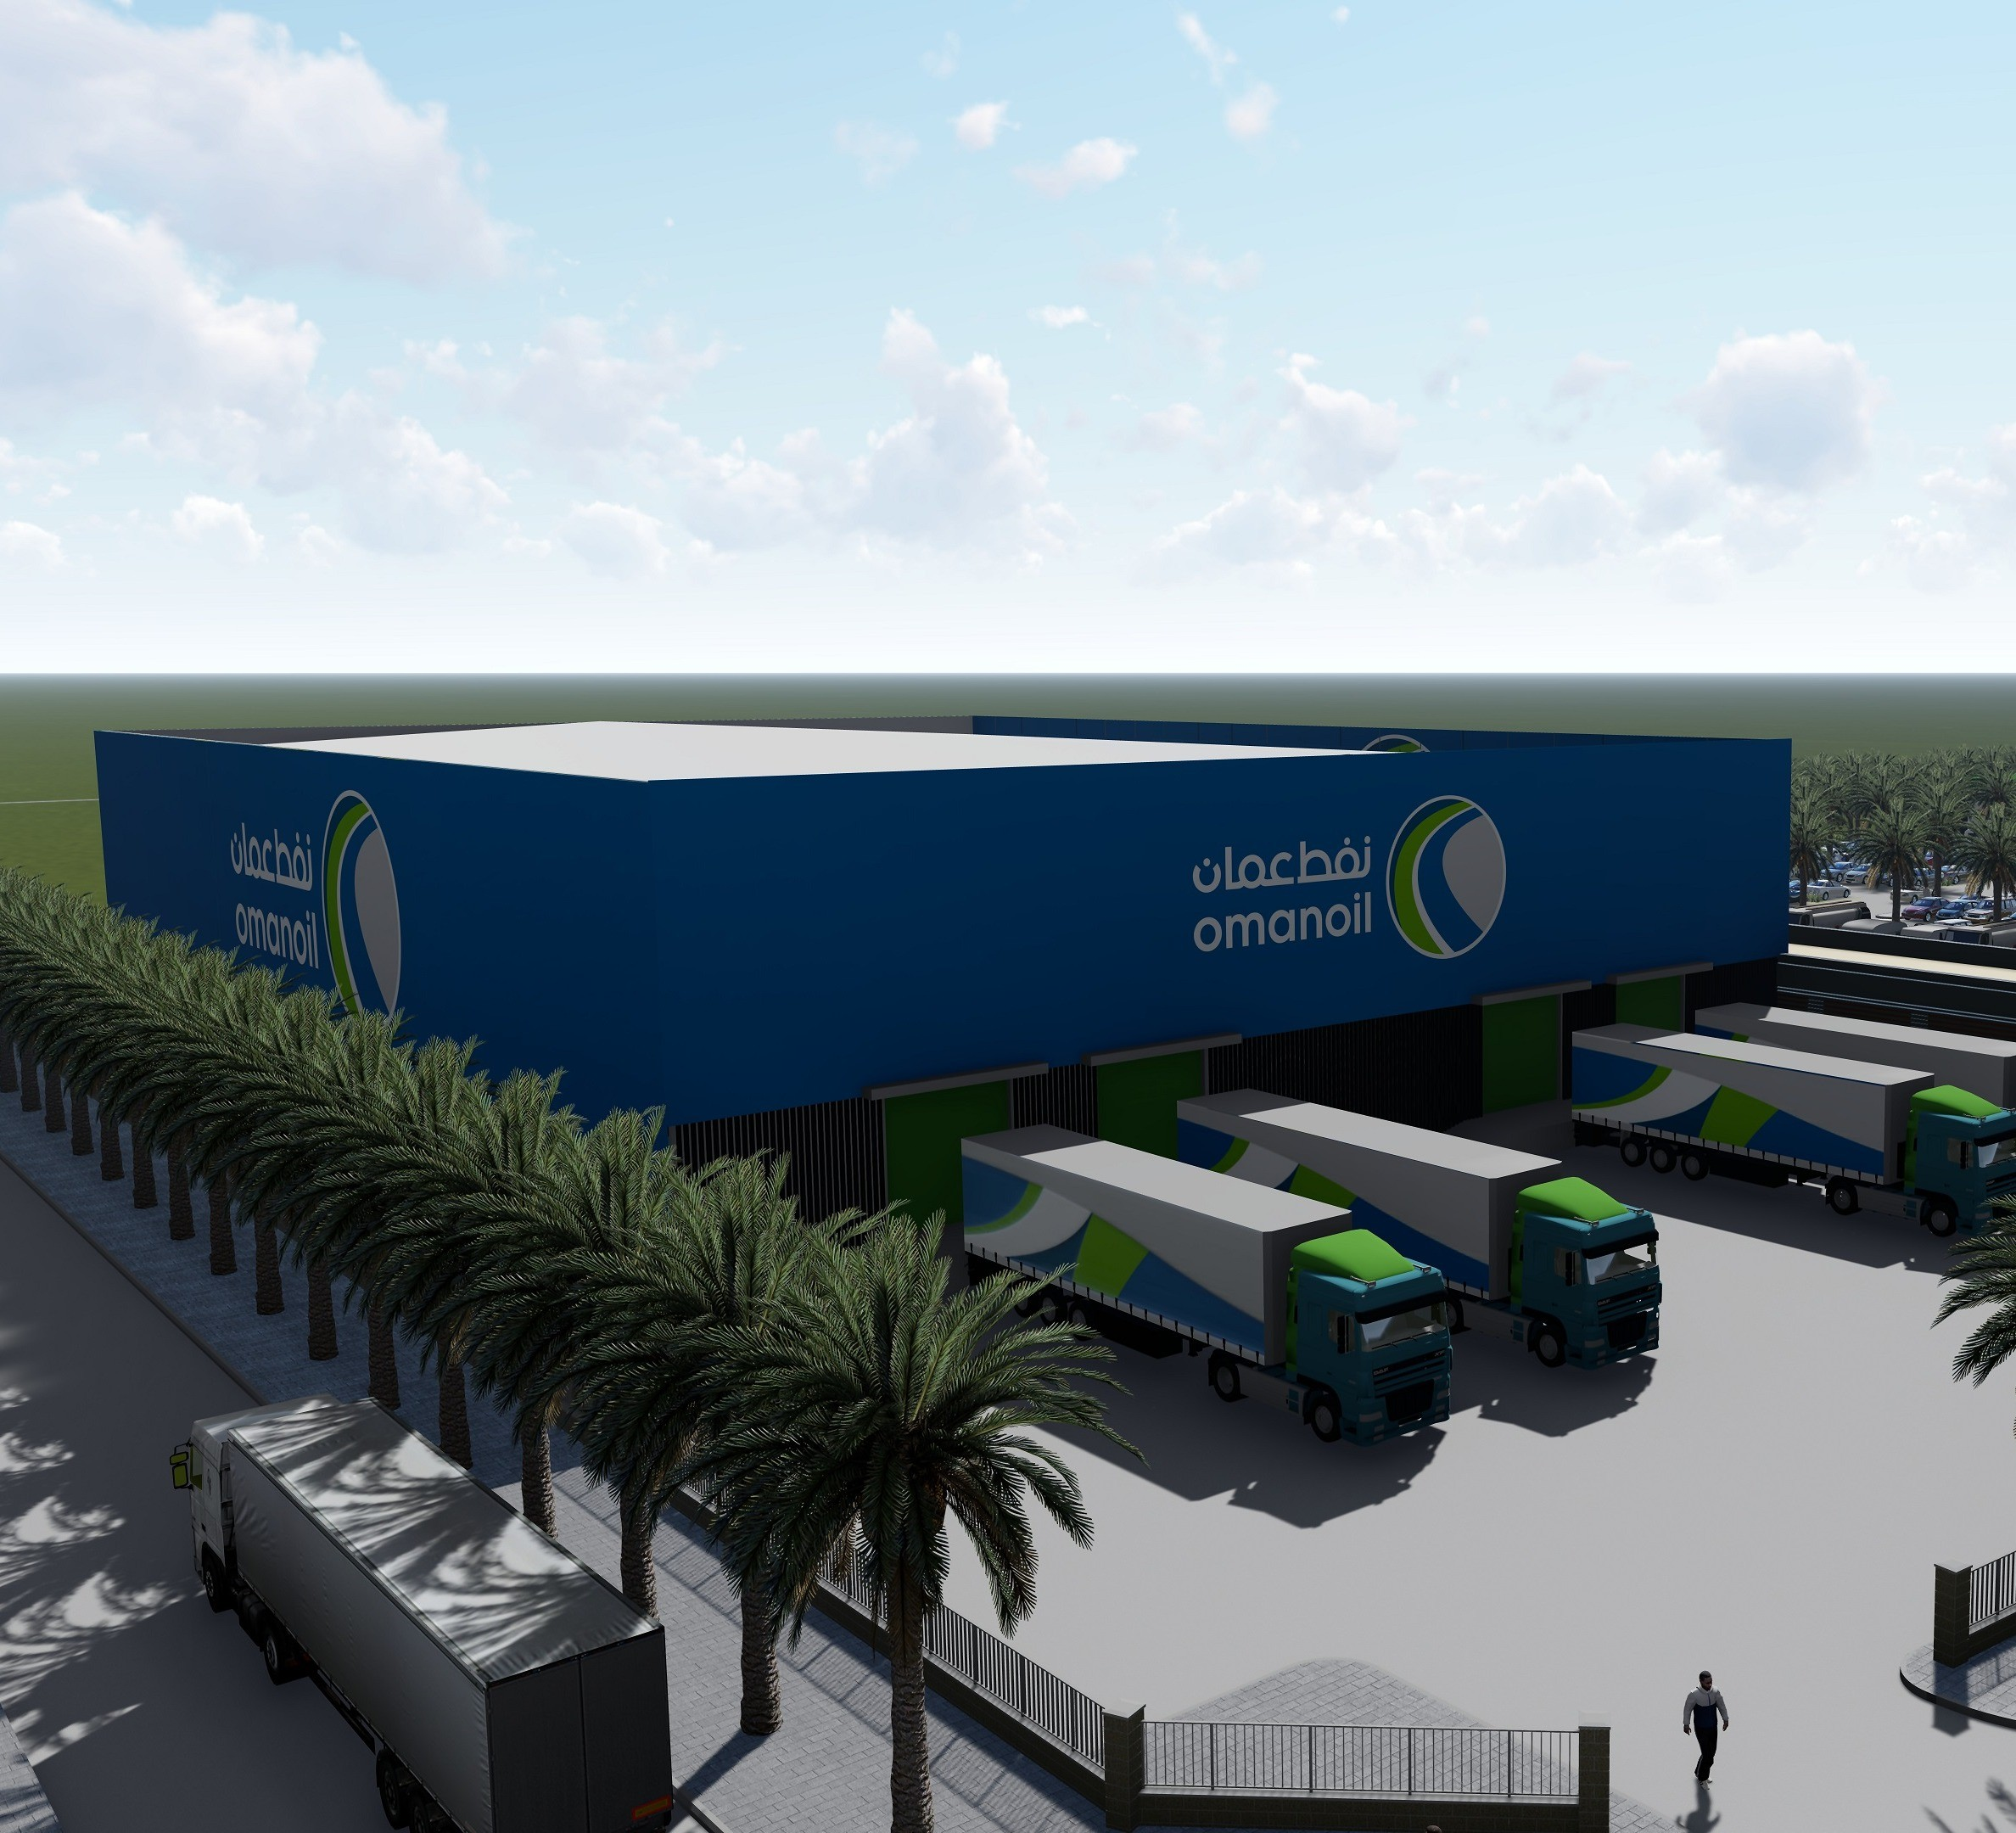 OMAN OIL MARKETING COMPANY SIGNS WITH AL MADINA LOGISTICS FOR PRODUCT STORAGE AND MANAGEMENT